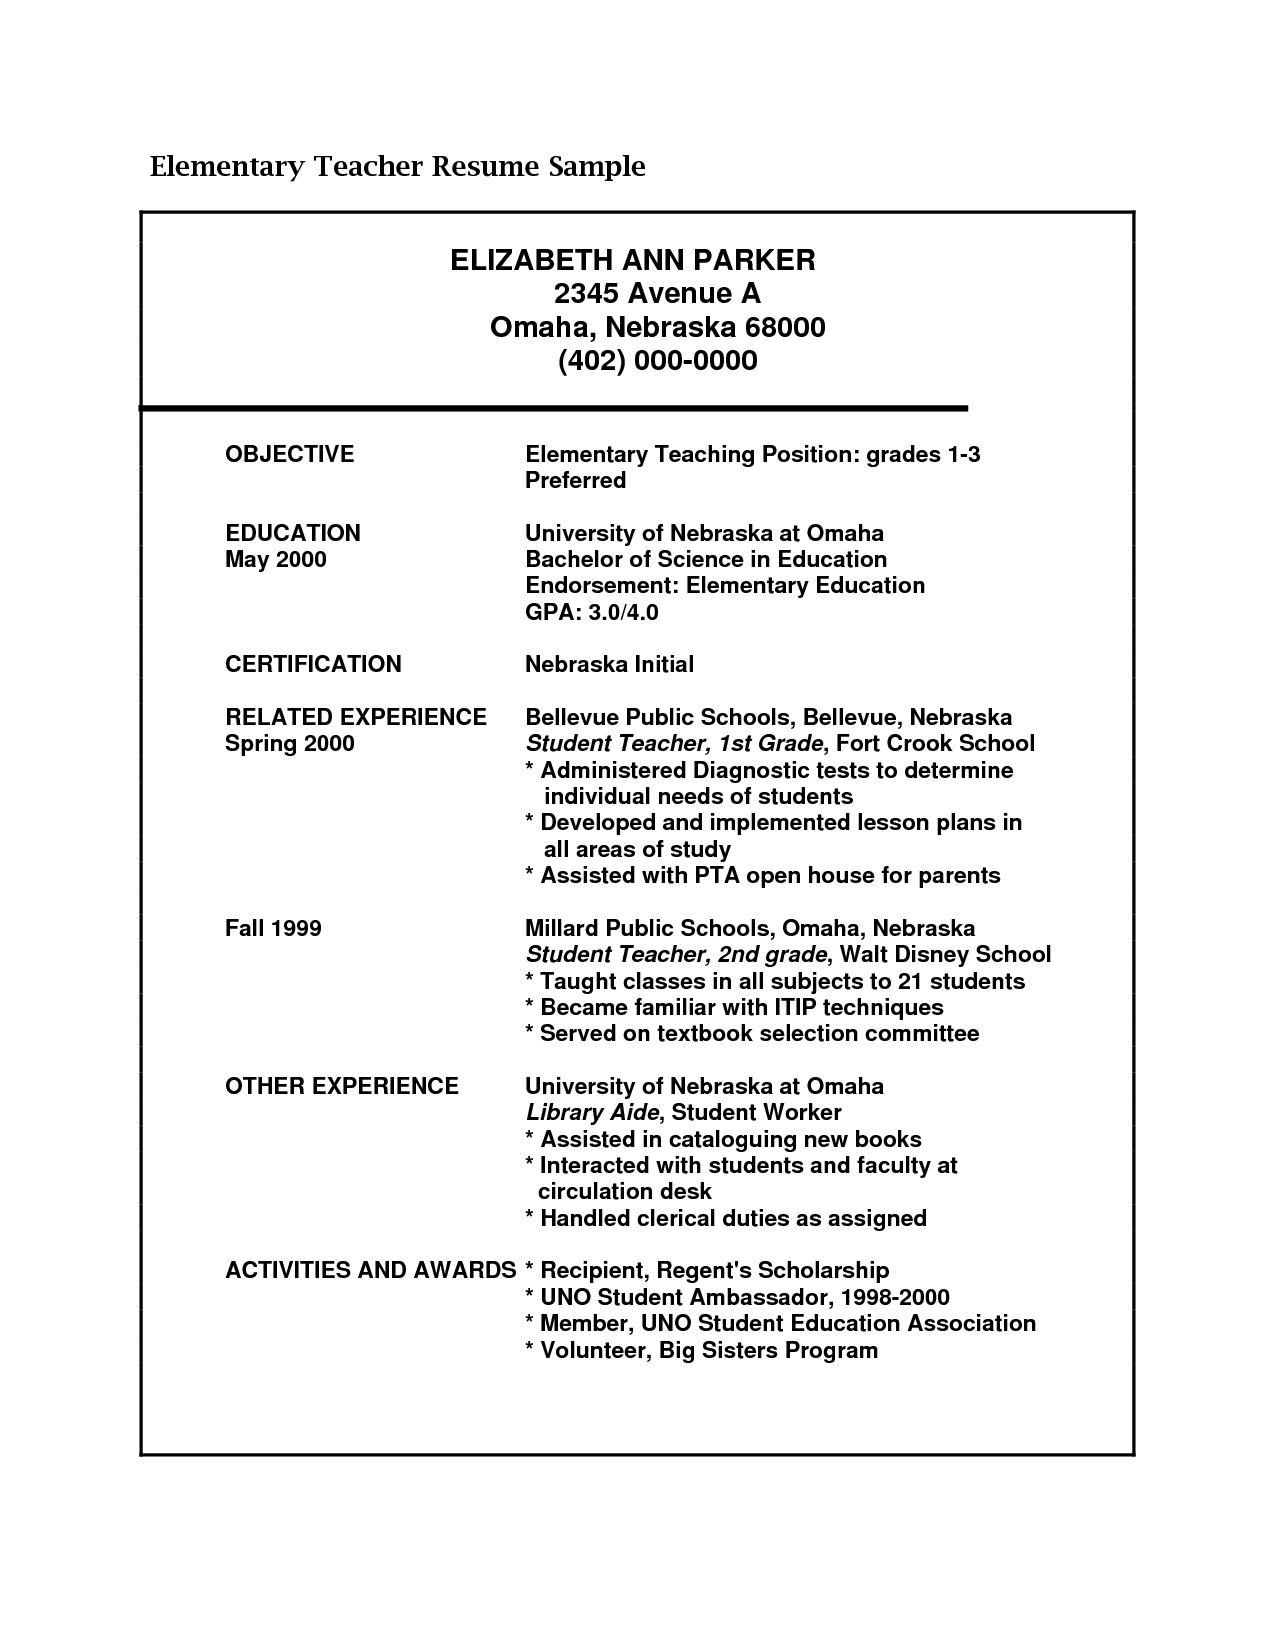 cv for teachers teachers resumes com au teachers cv for teachers teachers resumes com au middot examples